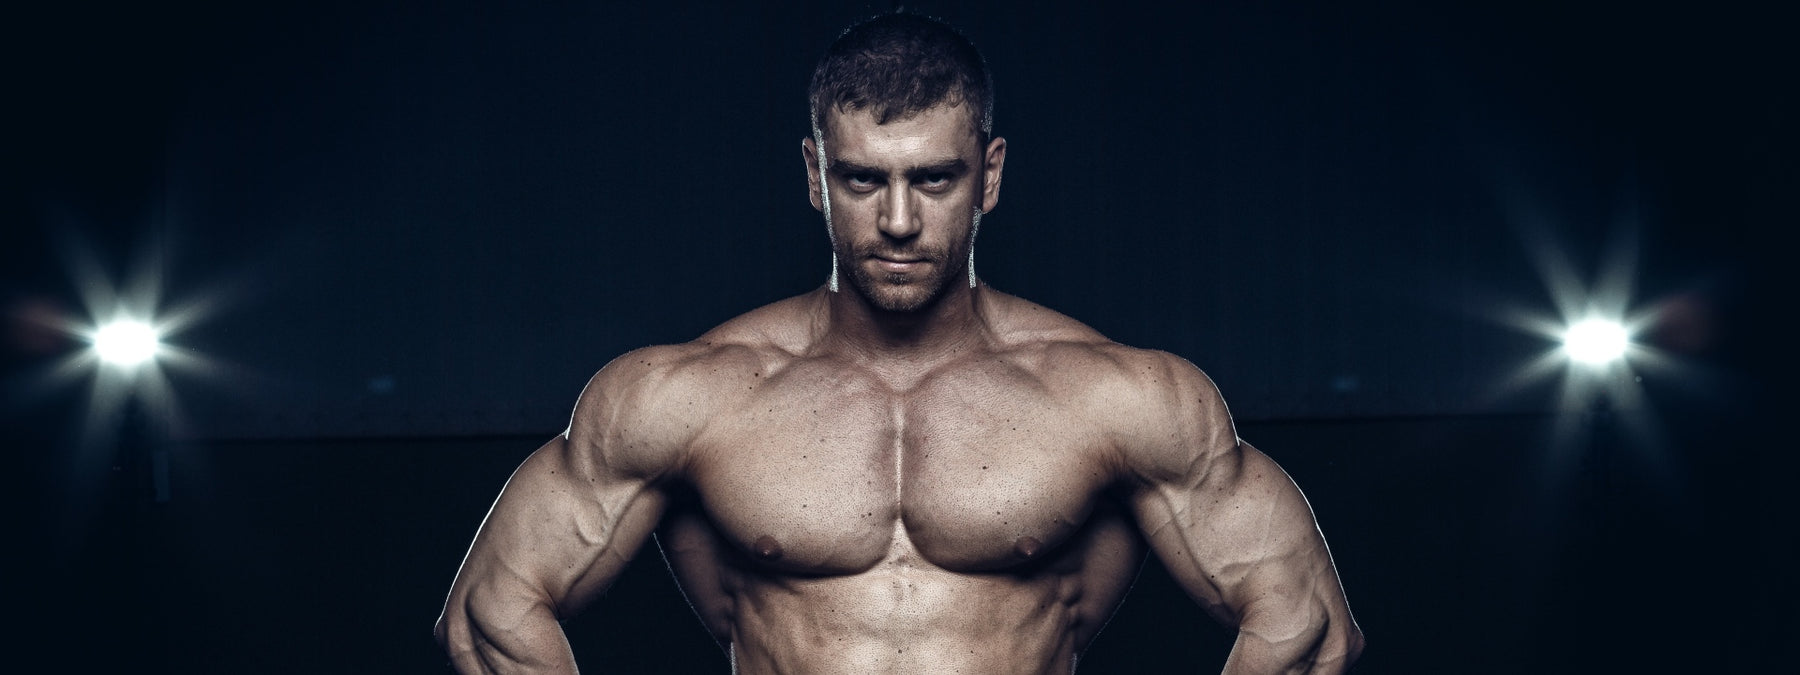 Power, Pain, Pump - The 3P Chest Workout Routine